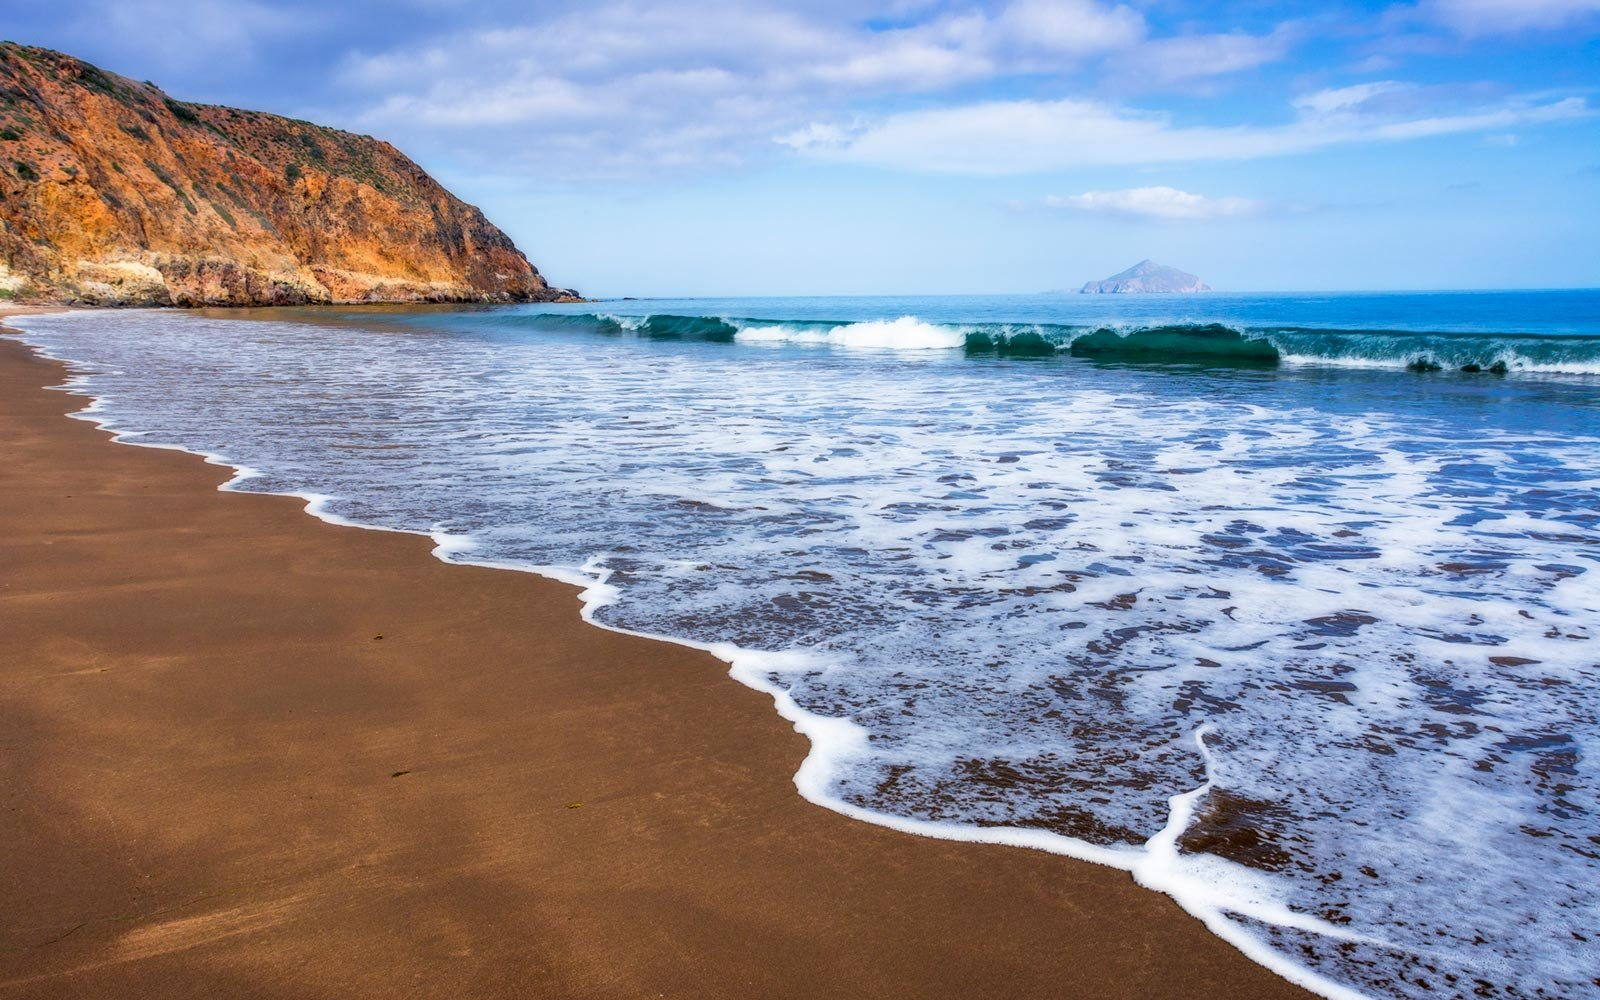 A Guide to Visiting California's Channel Islands